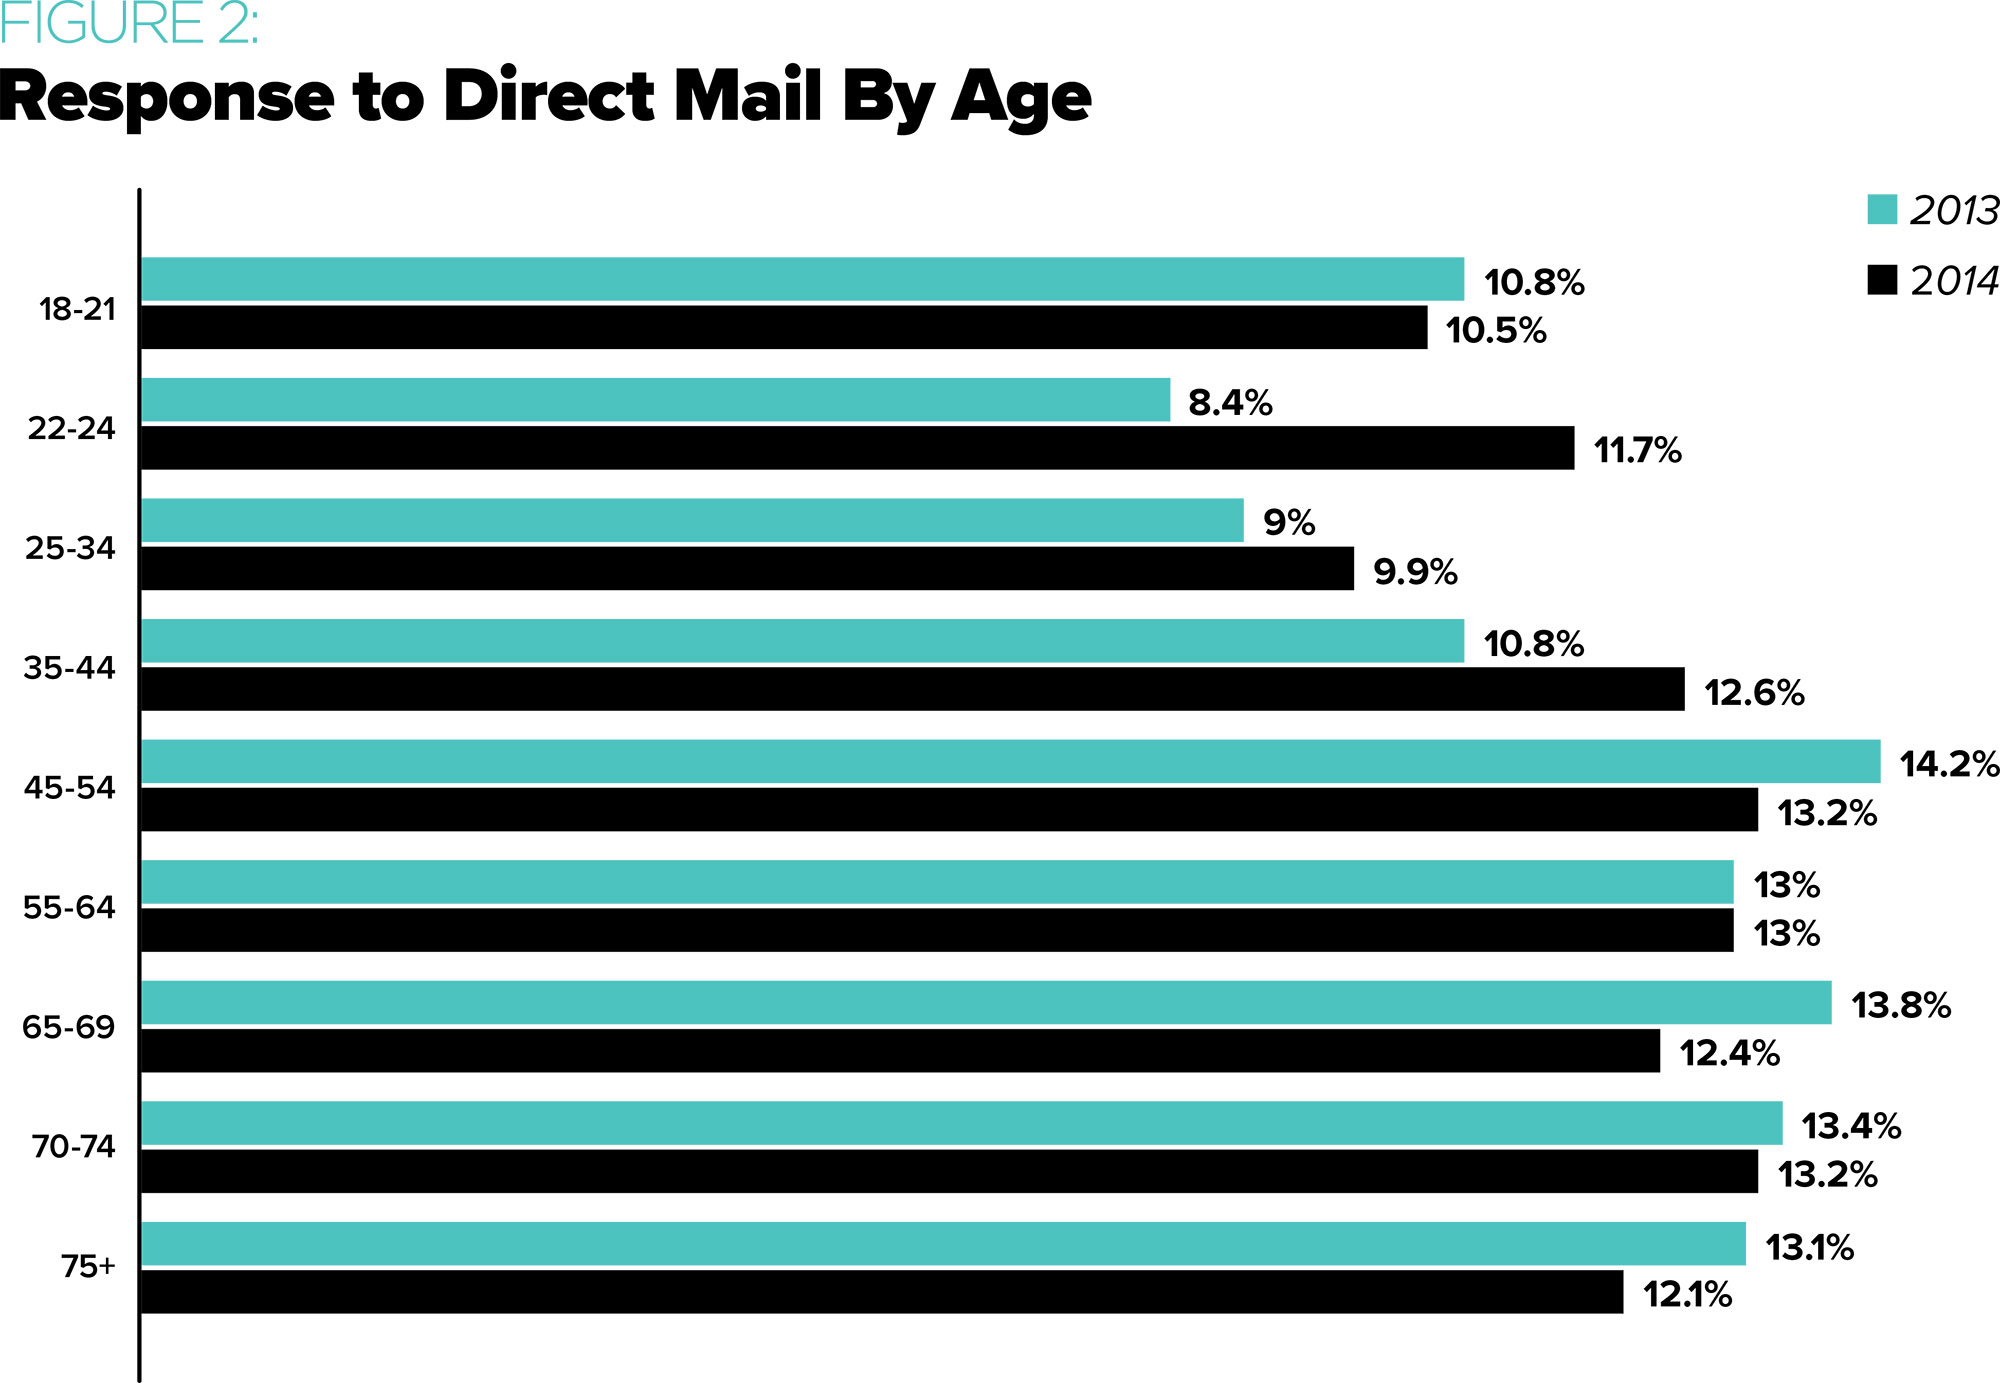 Response to Direct Mail By Age